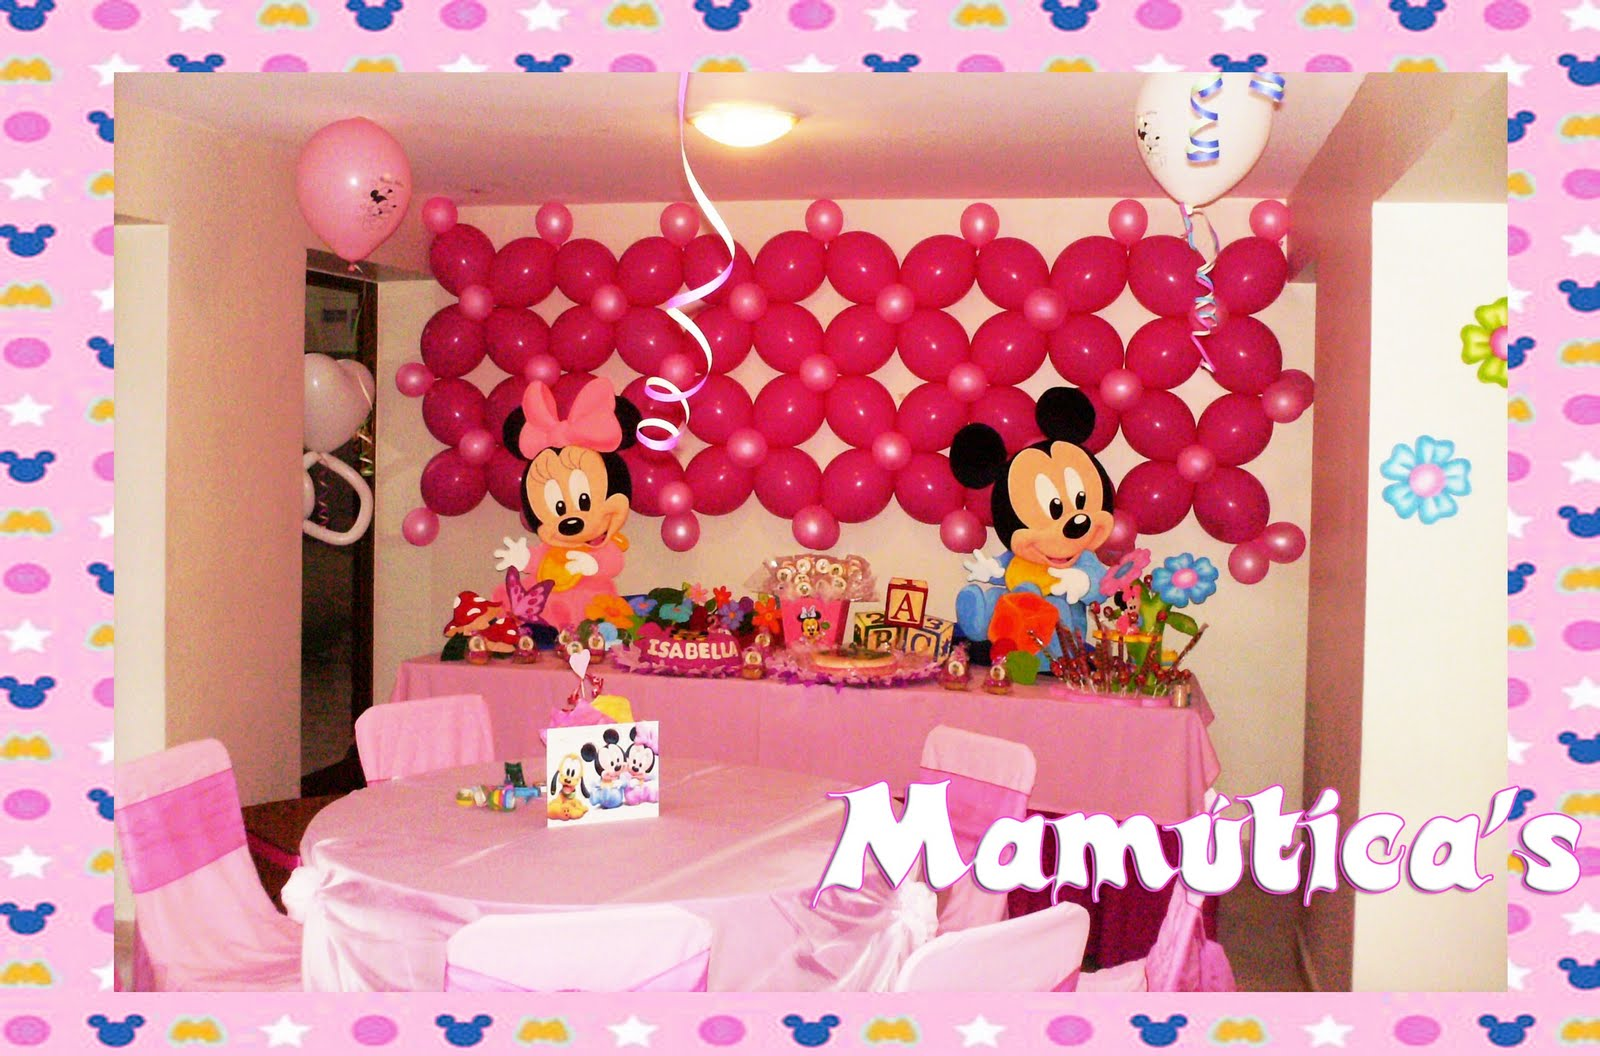 Decoracion Minnie Mouse ~ Just another WordPress site